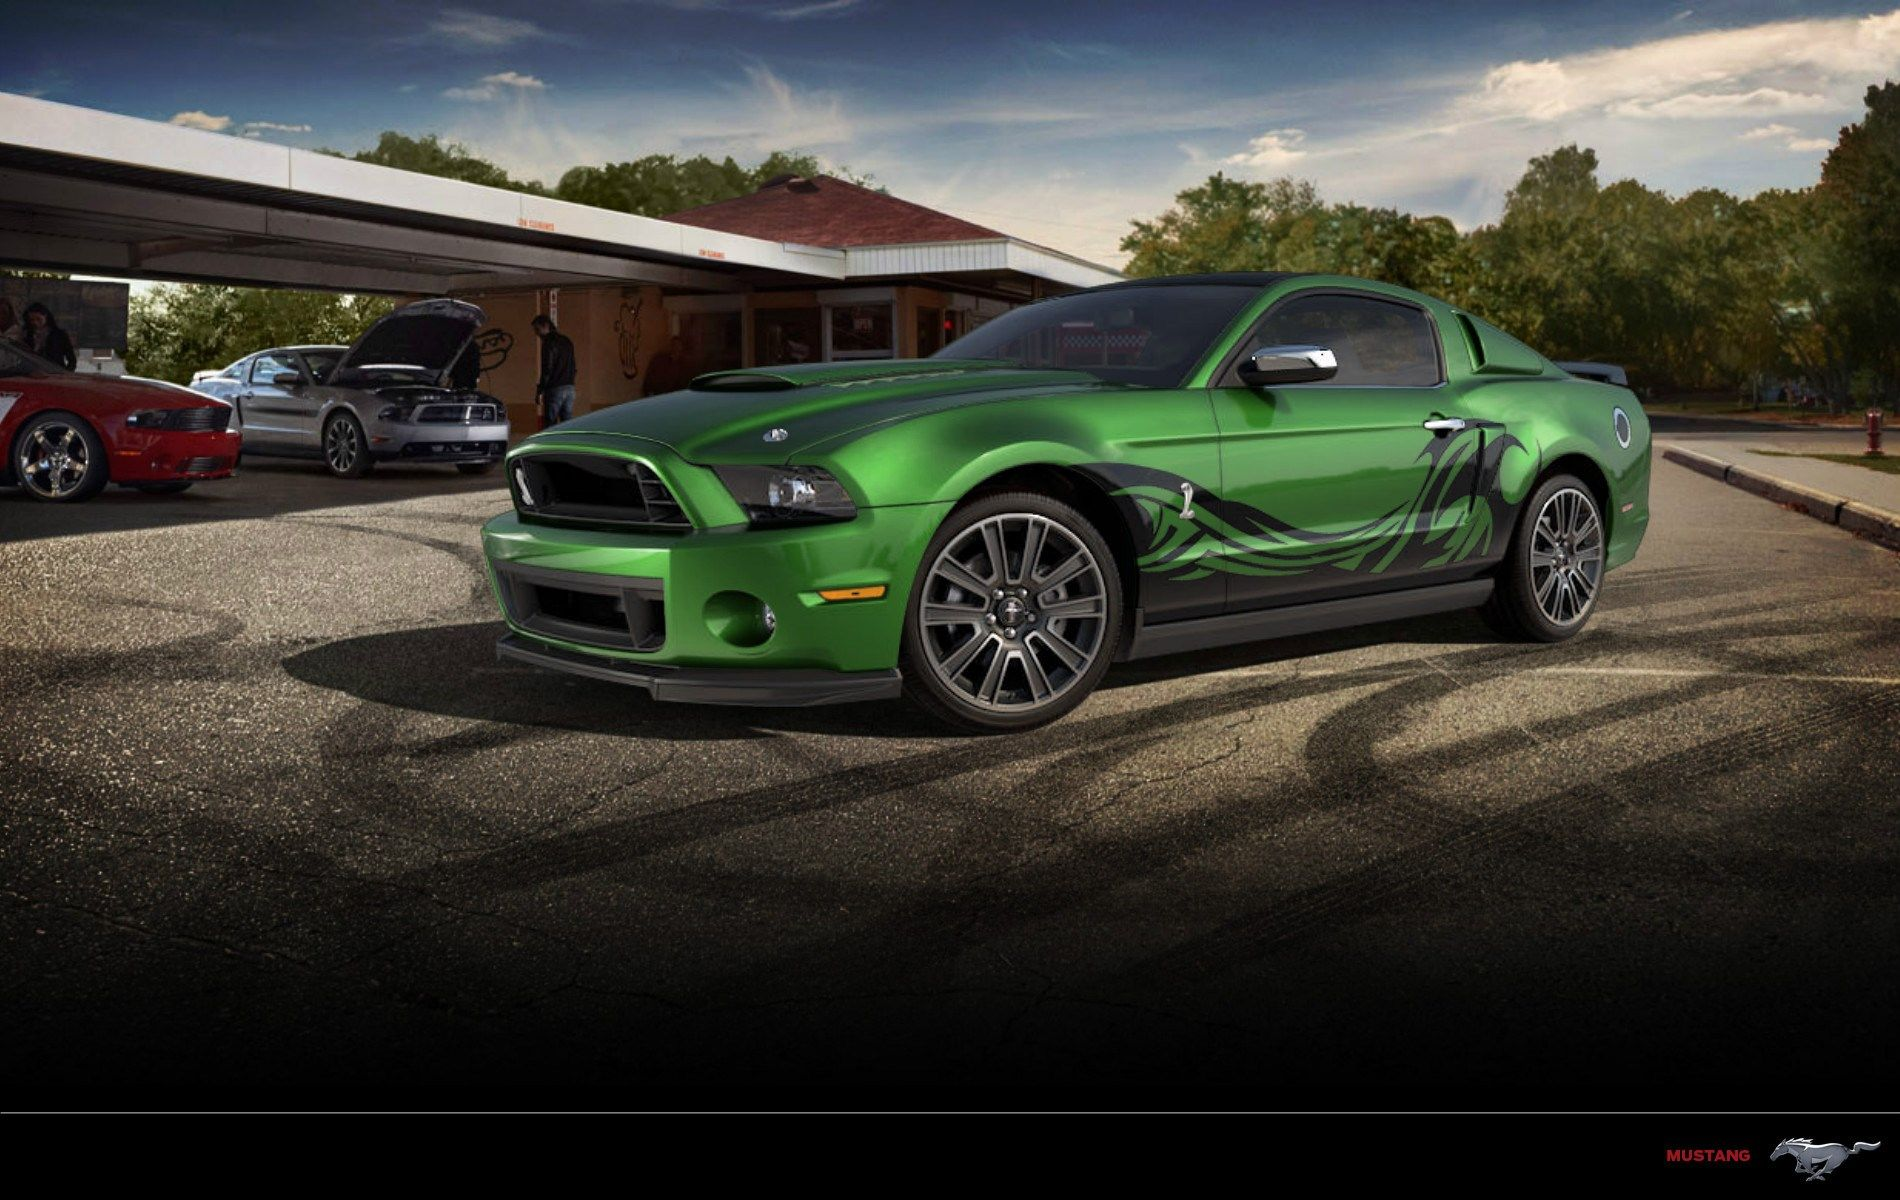 Beautiful Wallpaper High Quality Mustang - 7bd3b1205ee1465f216484dfb7abb360  Best Photo Reference_164299.jpg